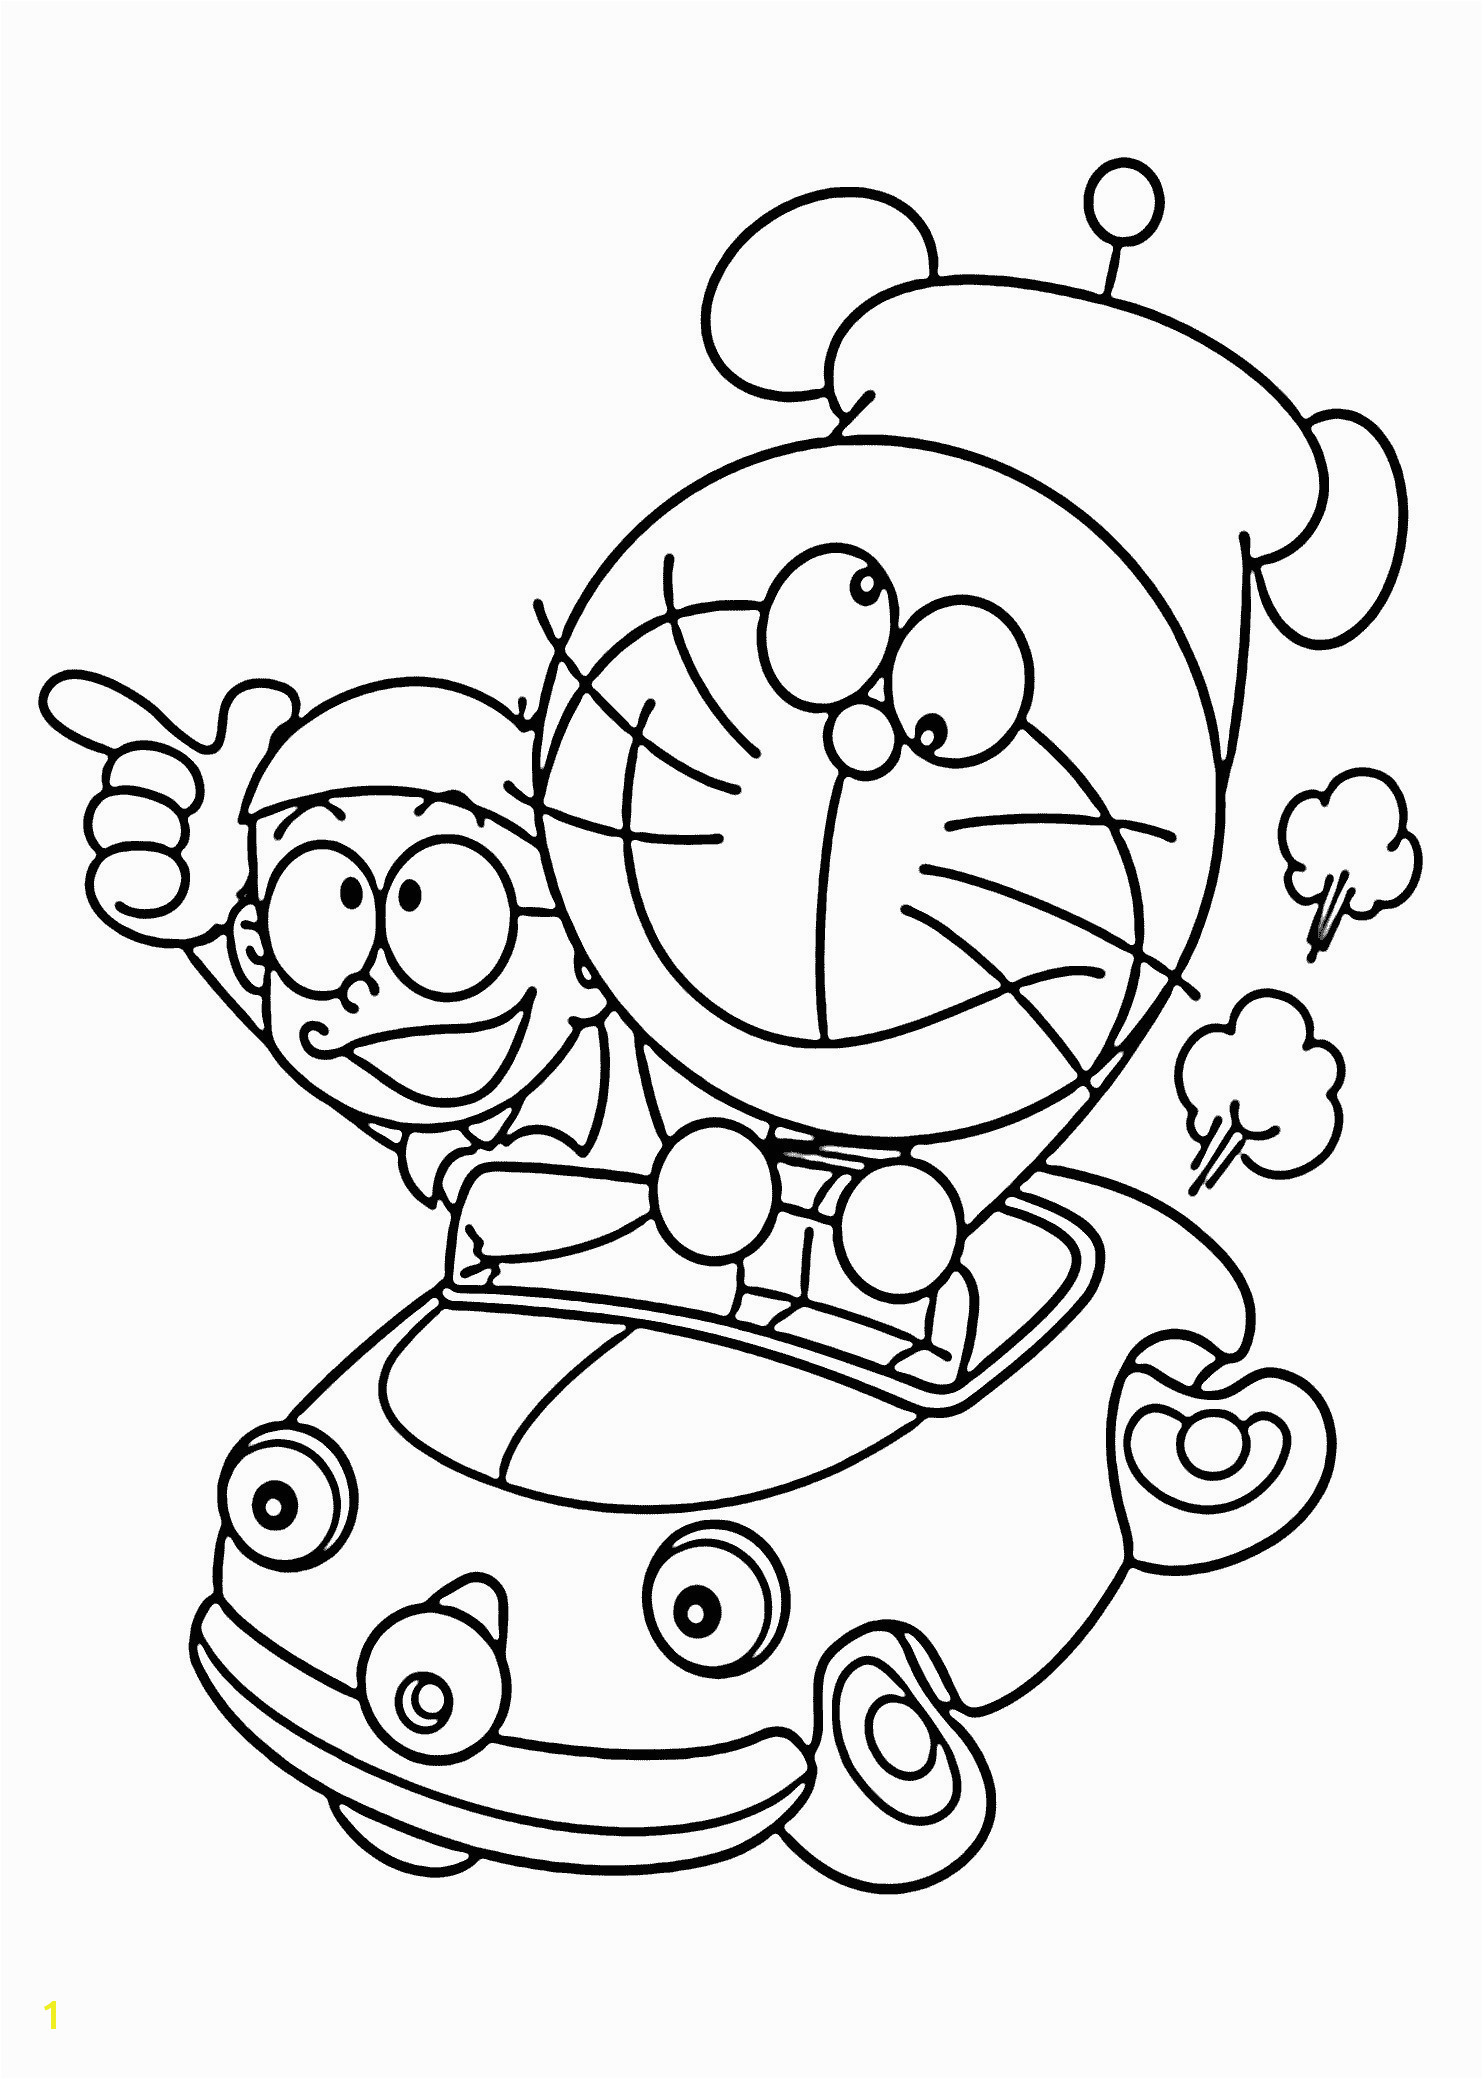 Picture Coloring Pages New Free Internet Coloring Pages Beautiful Cool Coloring Page Unique Picture Coloring